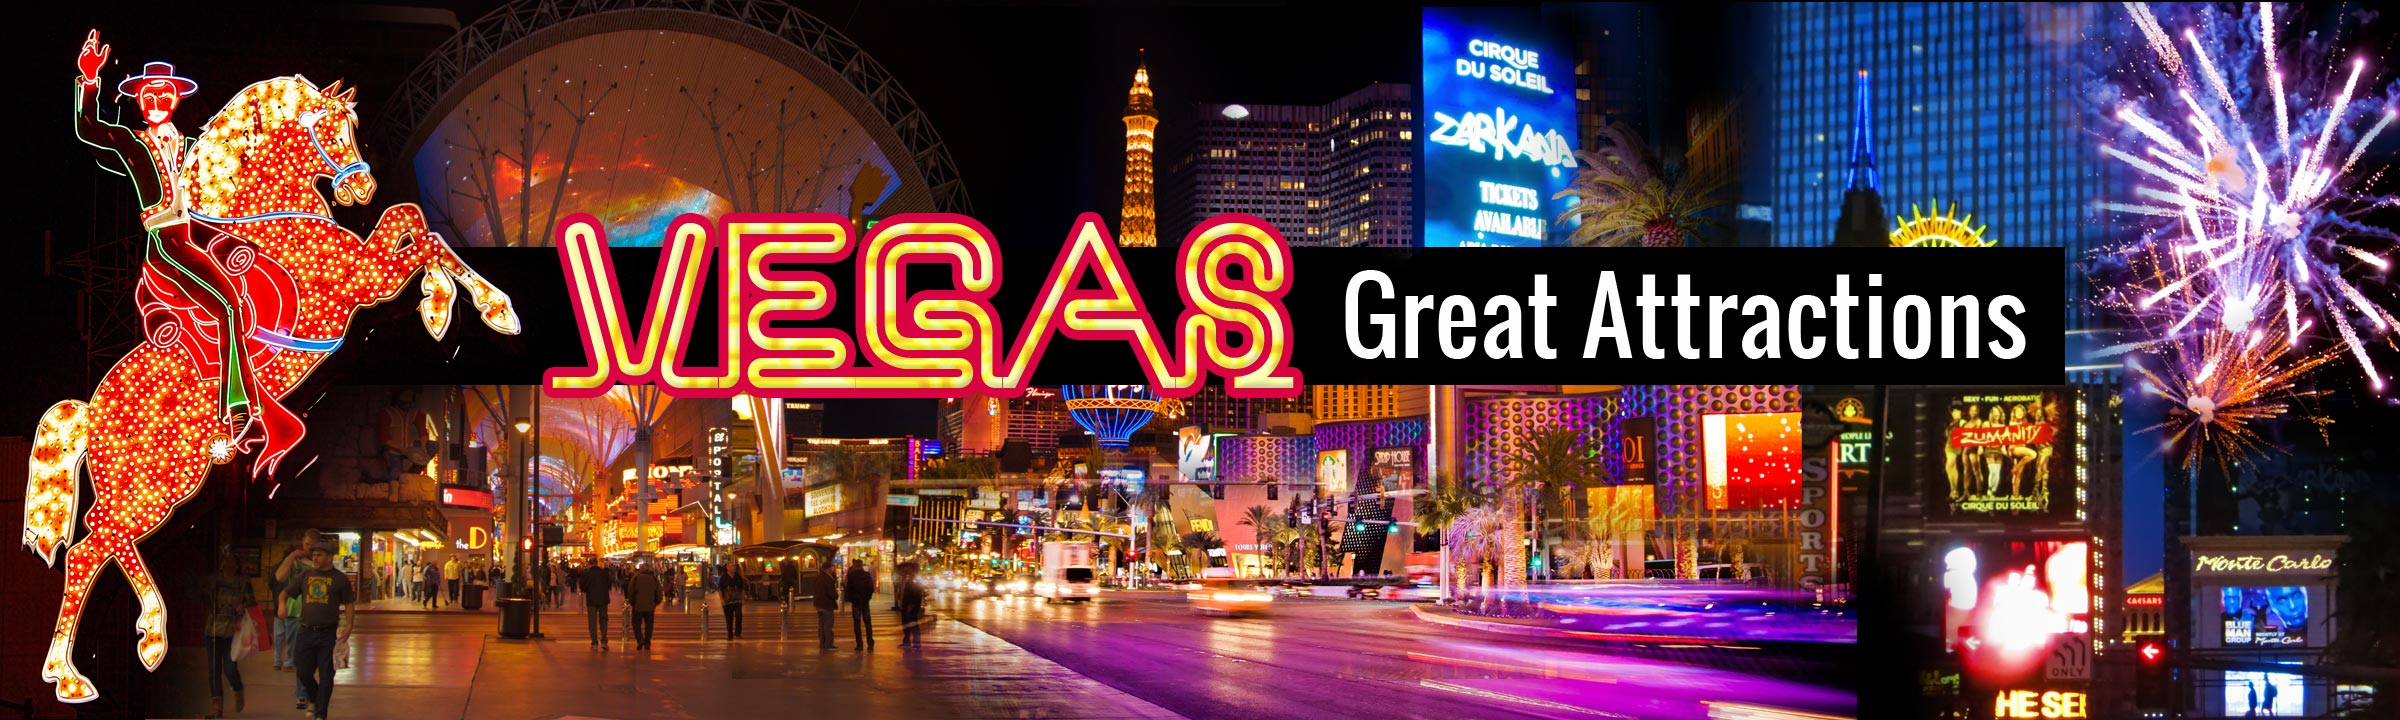 Vegas Great Attractions